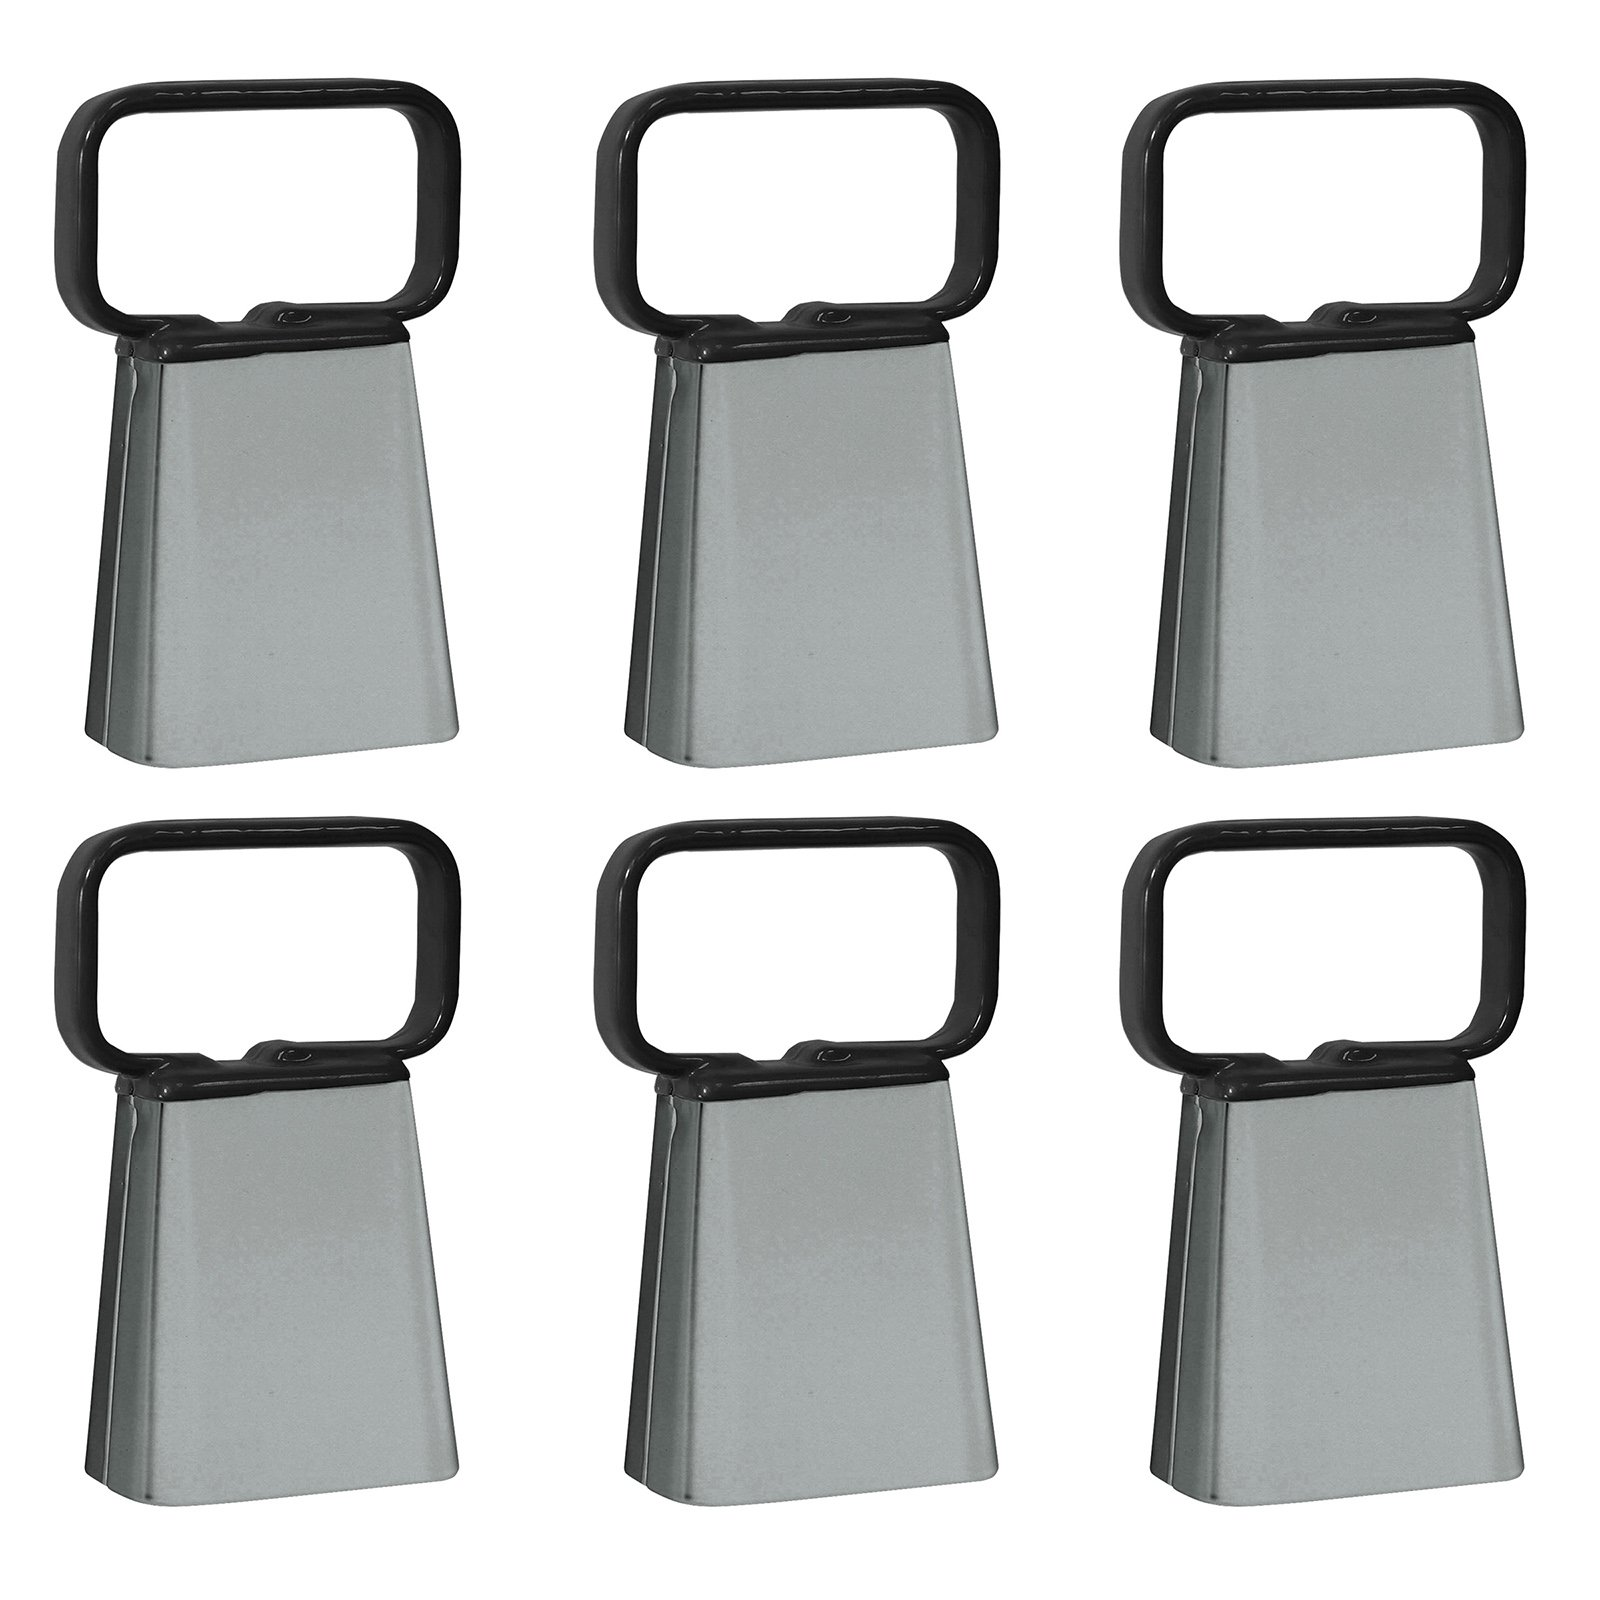 Buffalo Customizable Cowbell with Easy Grip Handle, 6-Pack by Buffalo Corp